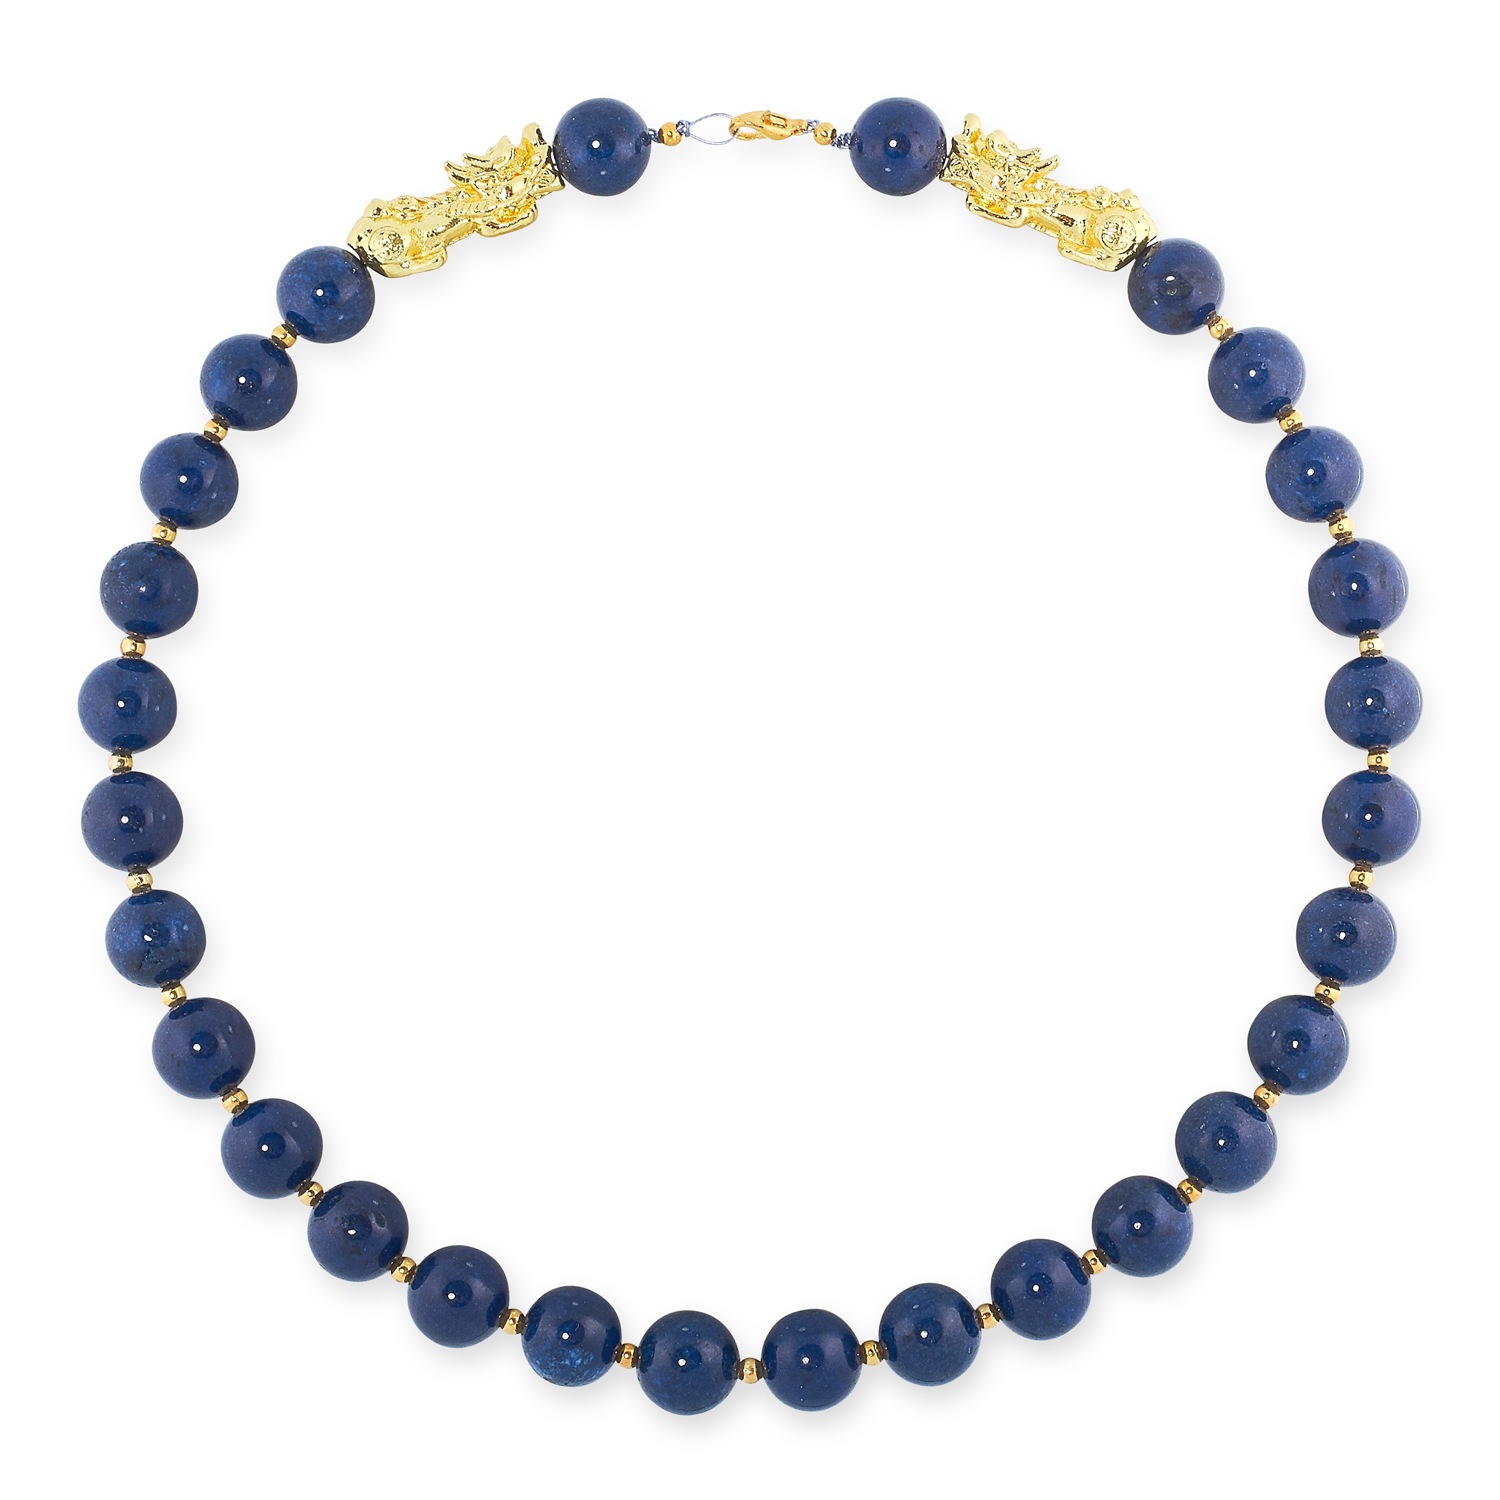 A MIXED LOT OF GEMSTONE BEAD NECKLACES, EARRINGS AND BRACELETS including jade, emerald, lapis - Image 9 of 13